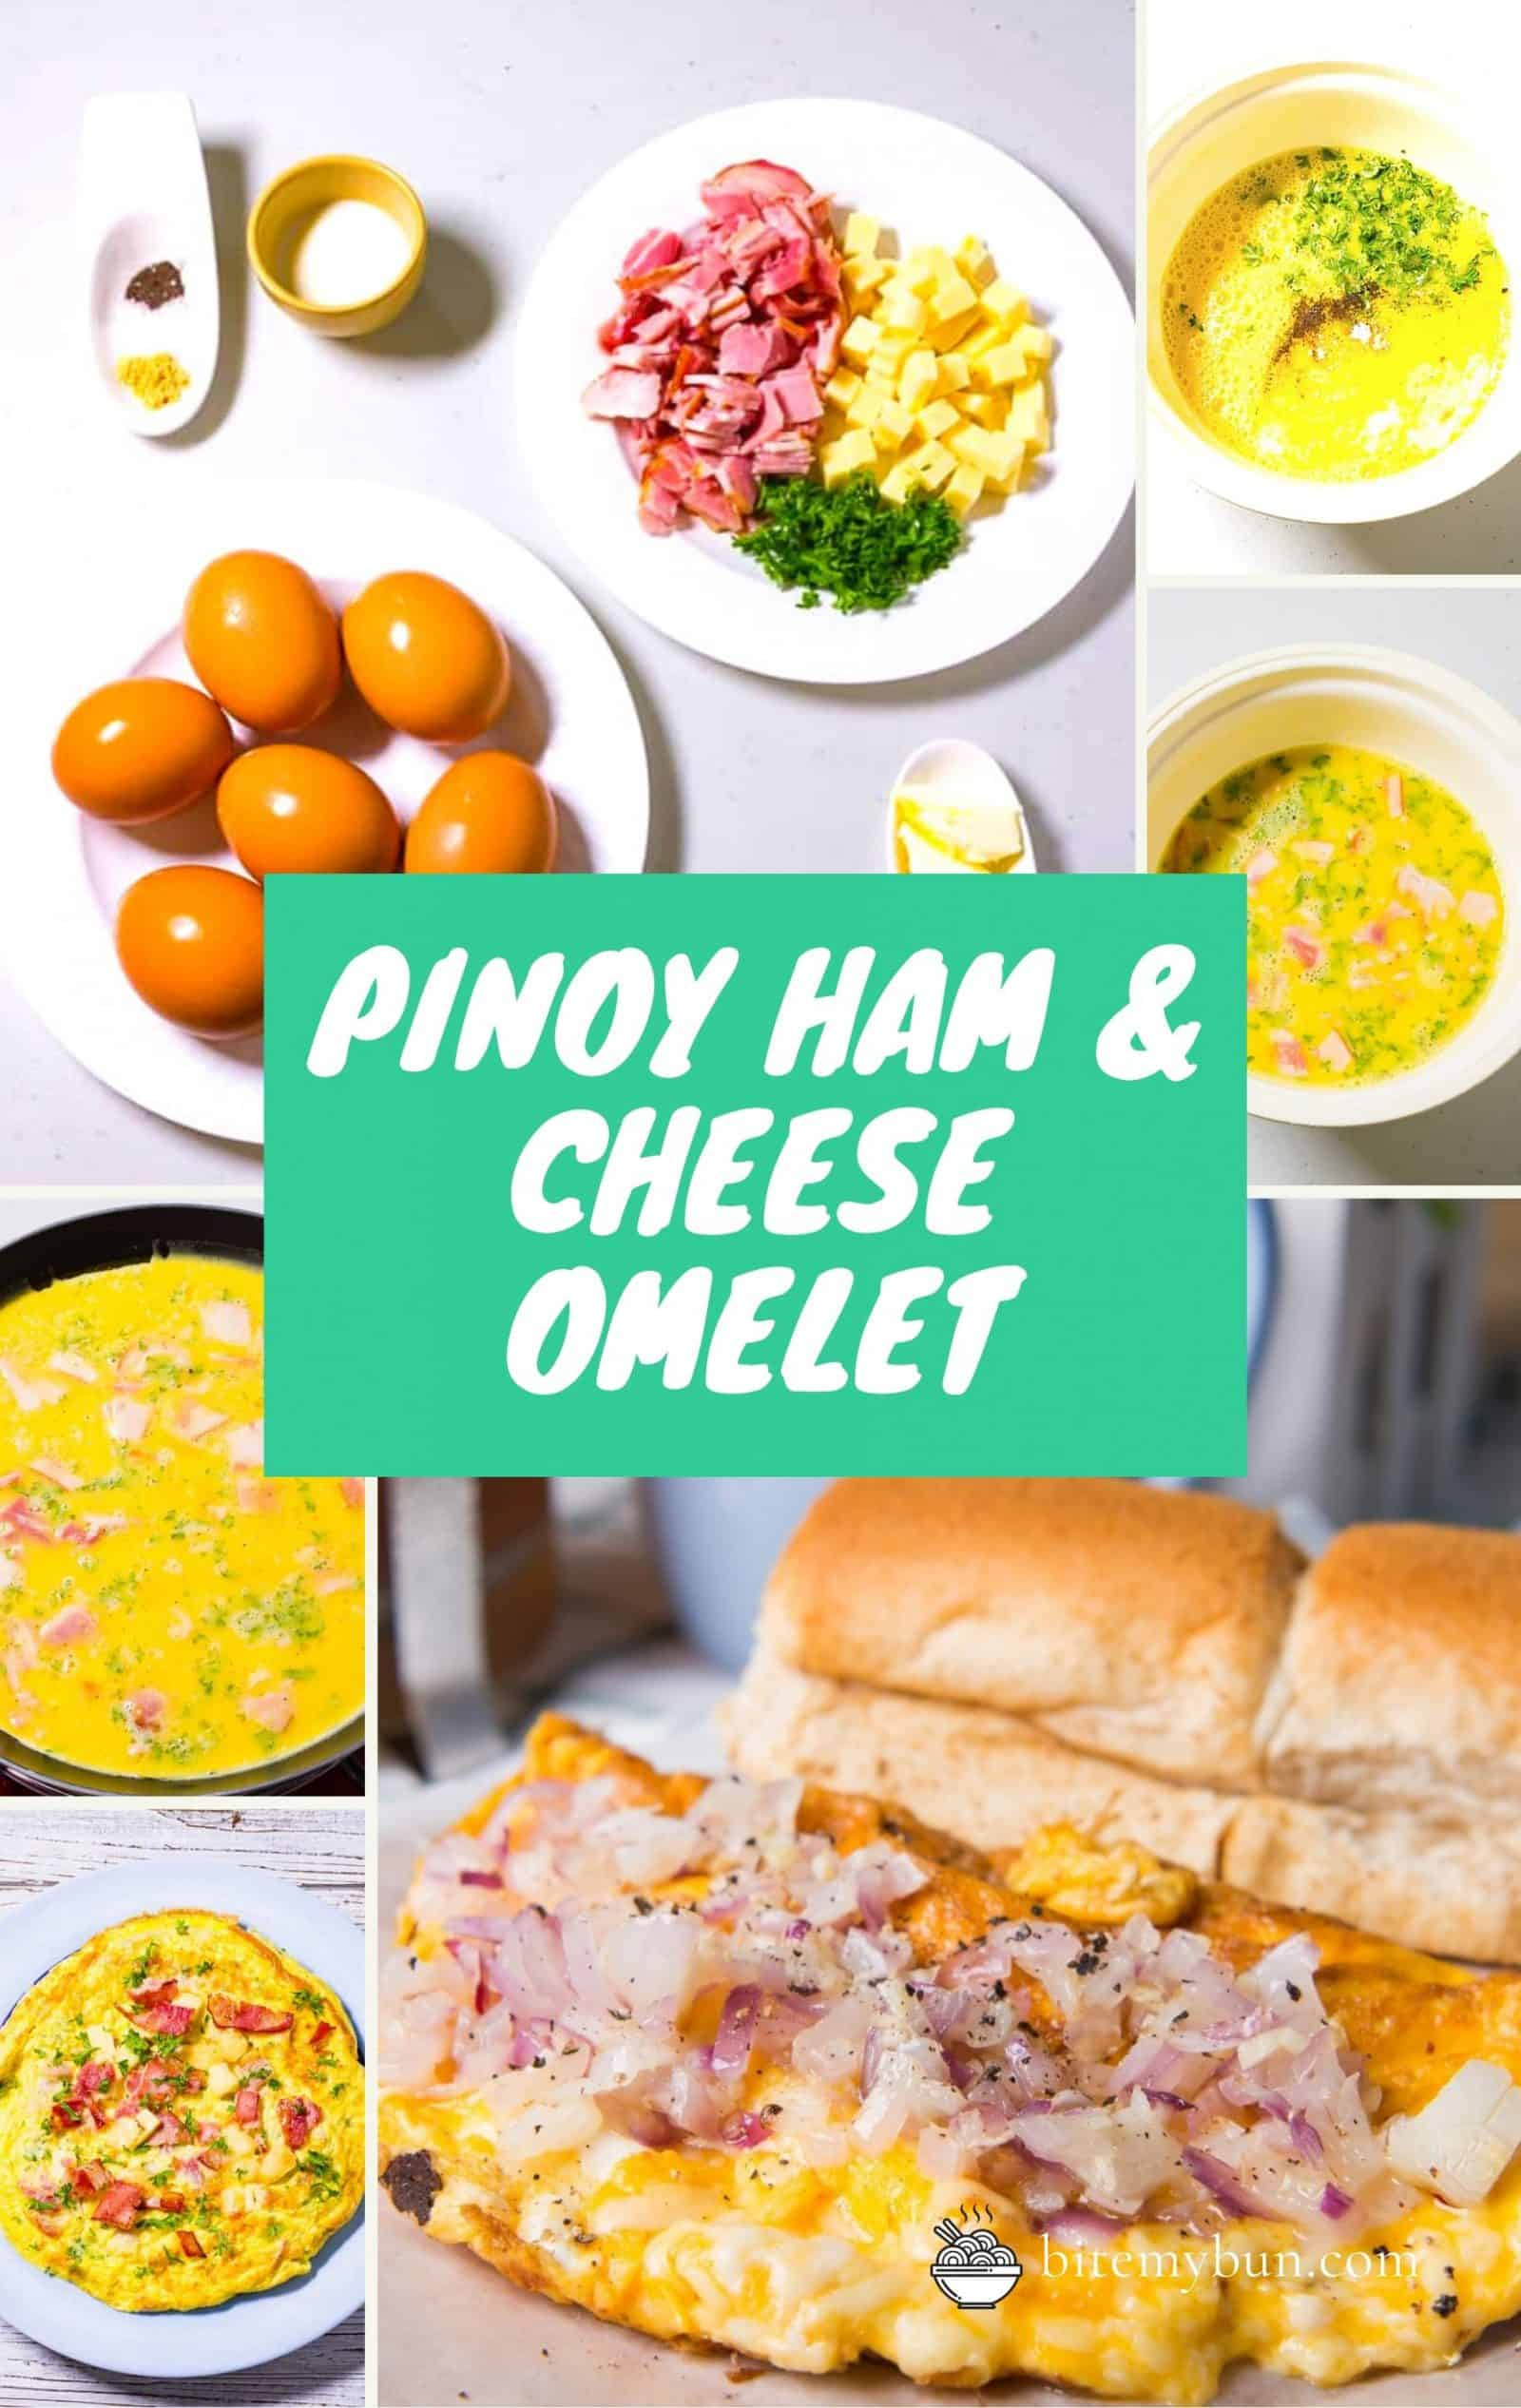 Pinoy ham & Cheese Omelet